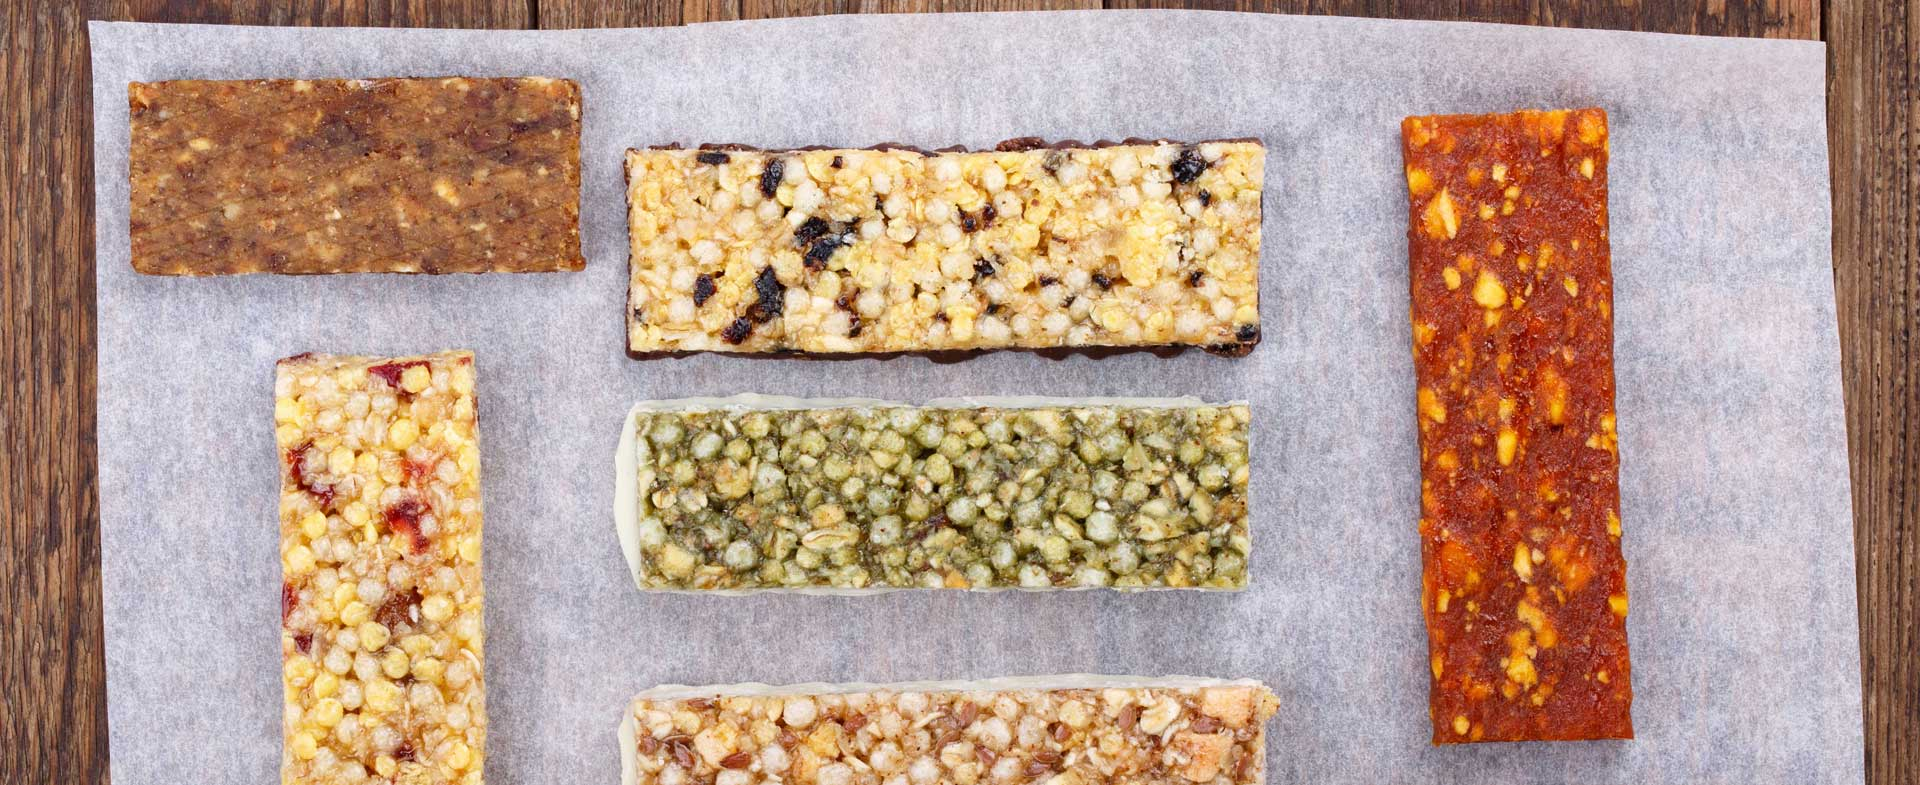 How To Choose A Truly Healthy Protein Bar   Henry Ford LiveWell